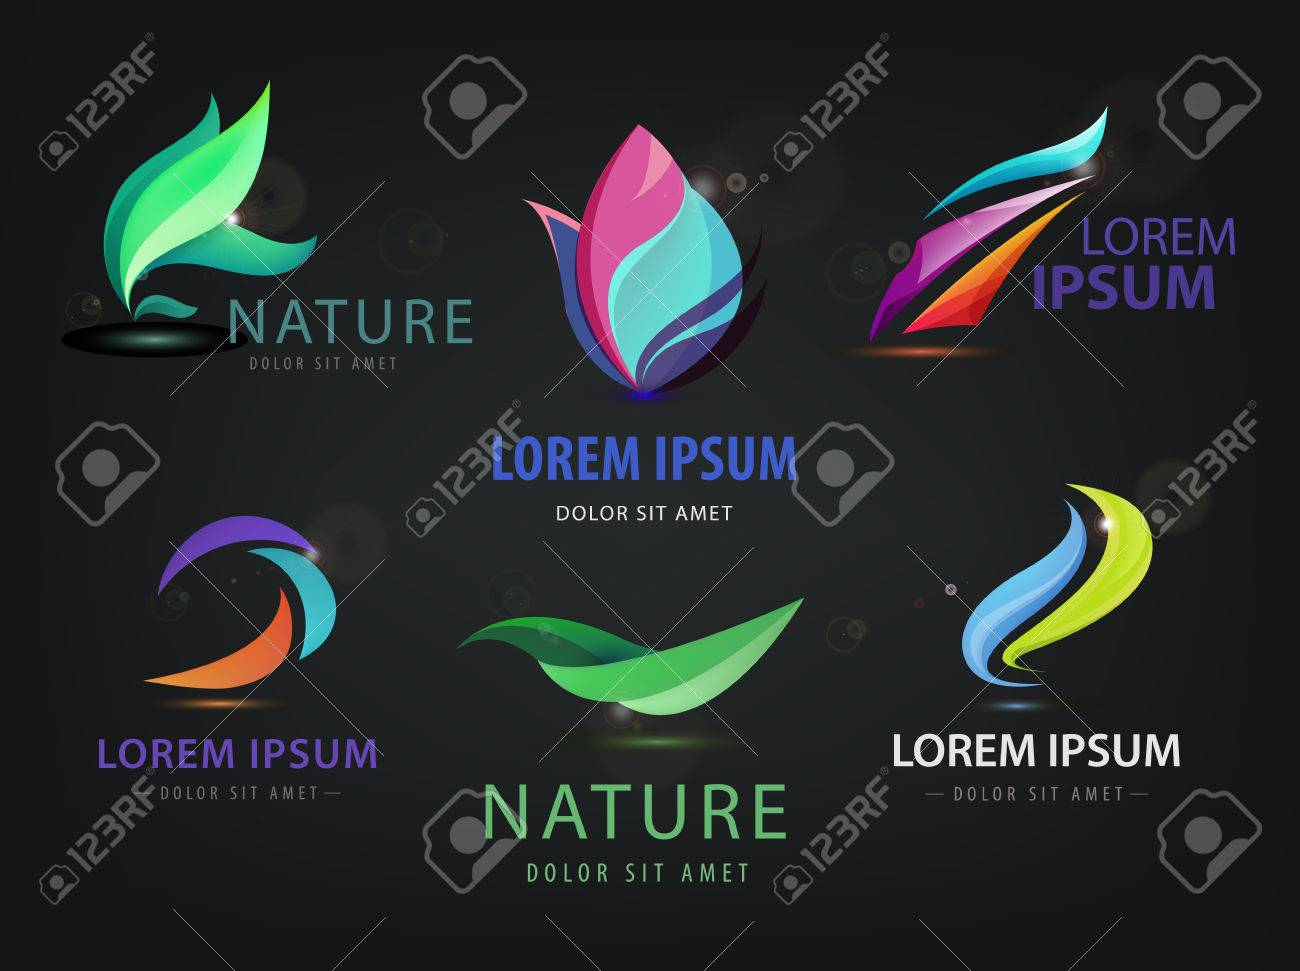 Vector set of abstract wavy, spa, salon, nature logos, icons isolated on dark background. Identity - 52738442